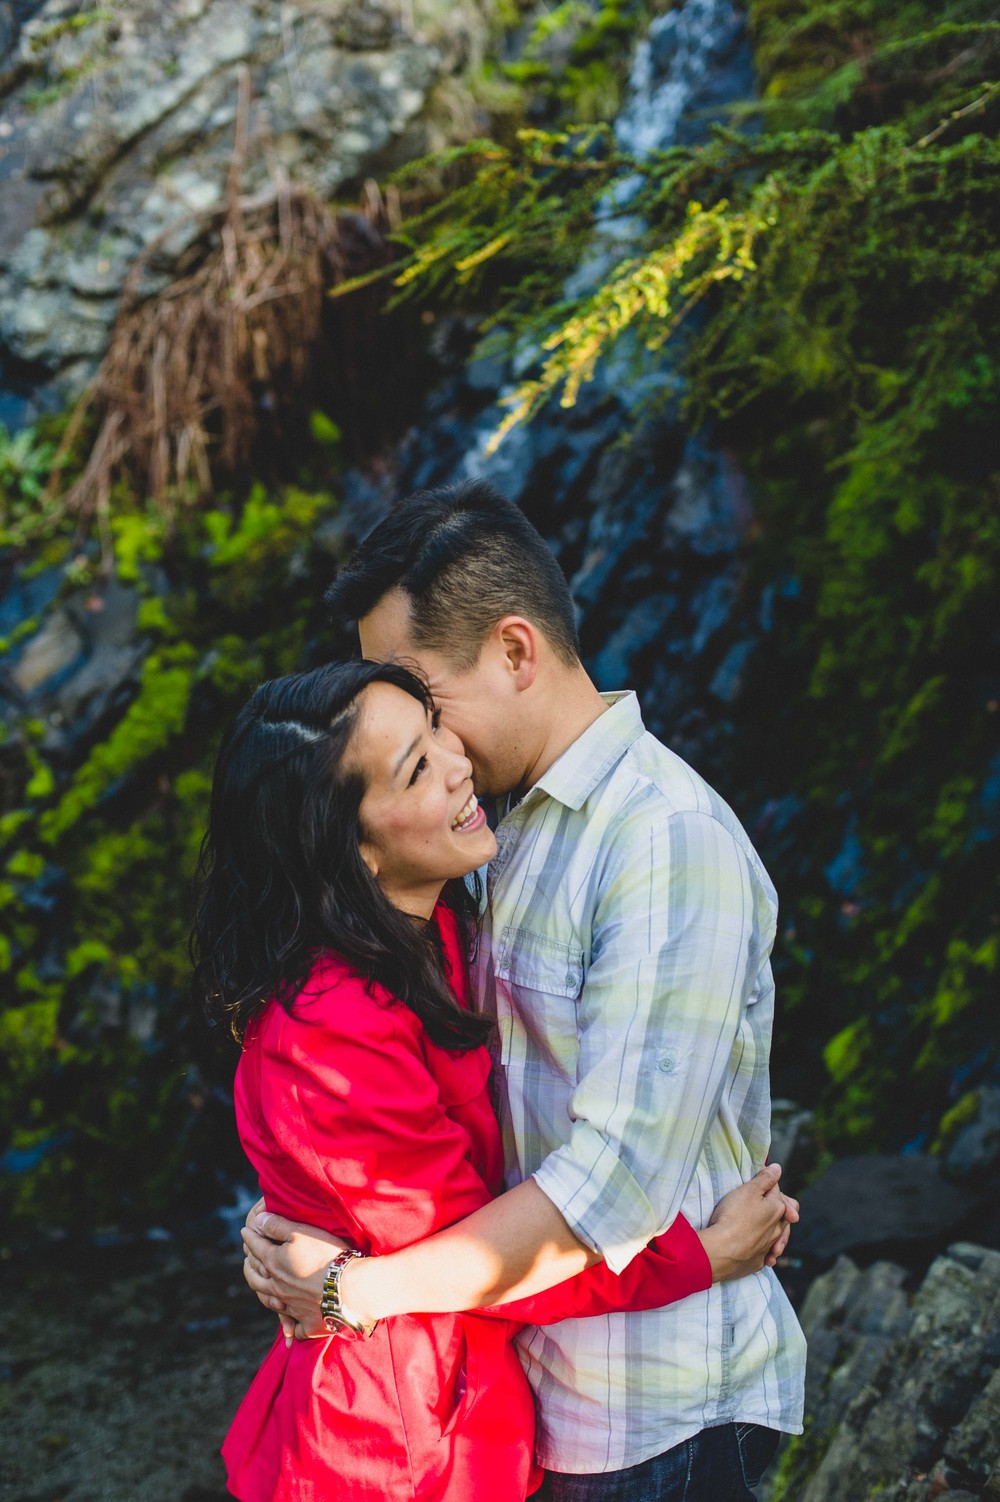 Vaccouver Queen Elizabeth Park engagement photography Edward Lai Photography-4.jpg